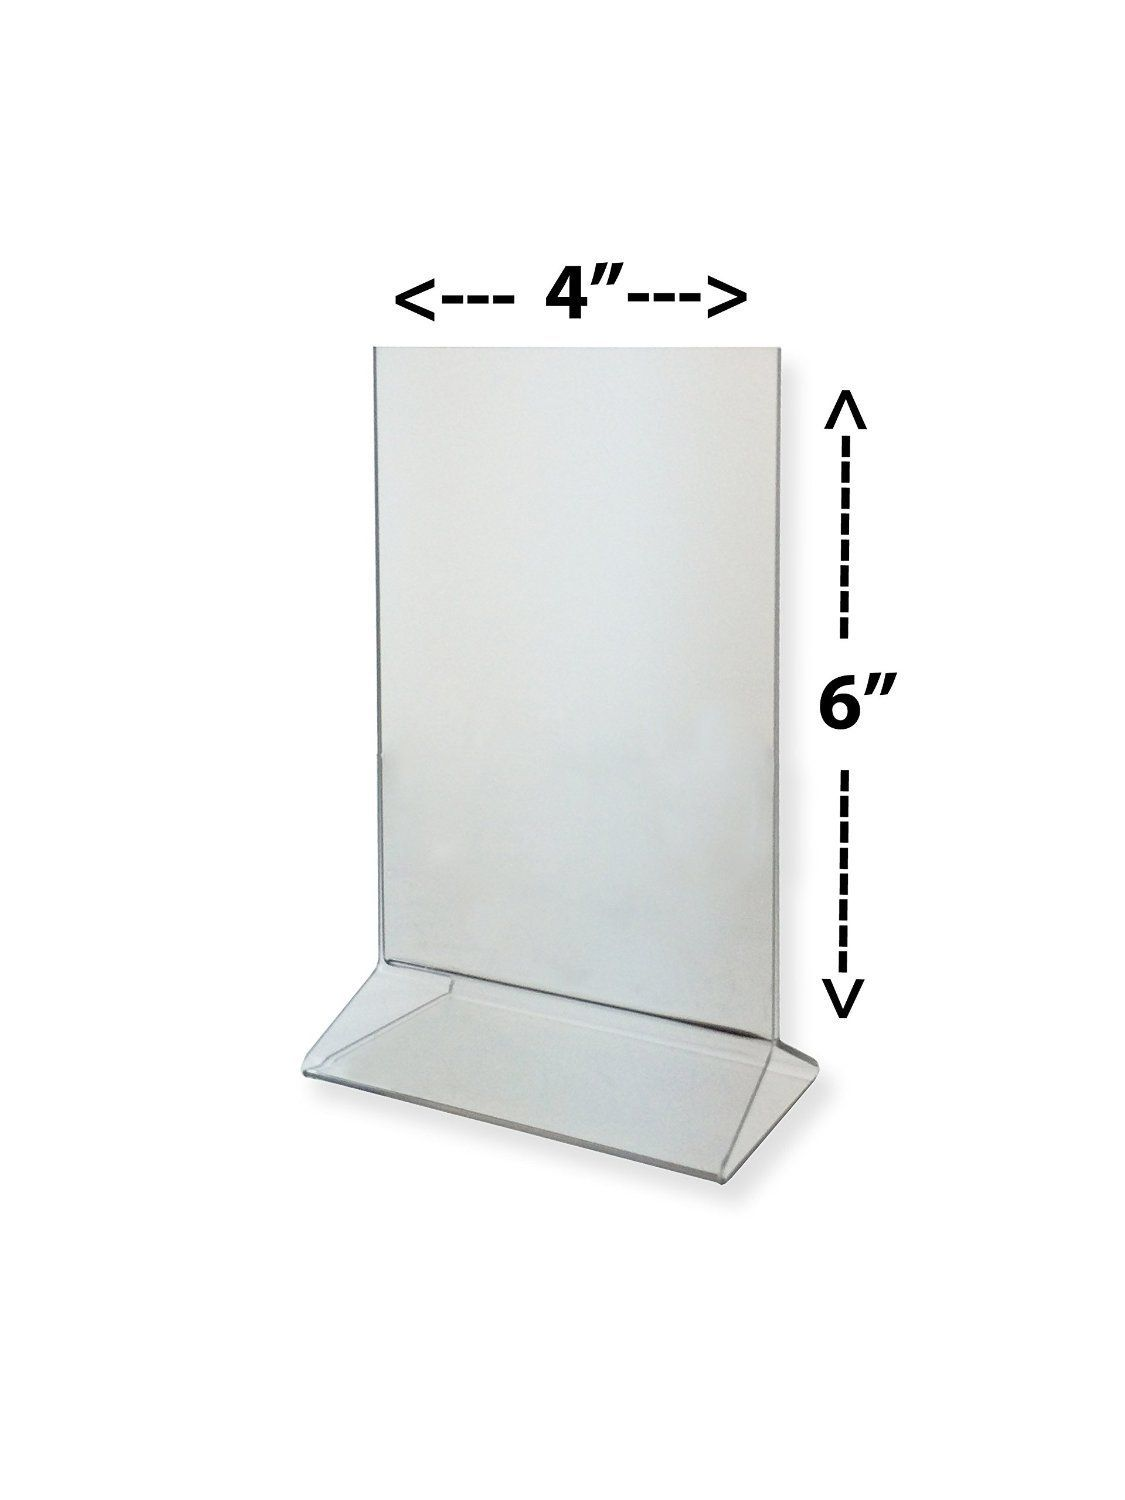 Amazon Com Marketing Holders 4 X 6 Acrylic Sign Holder Clear Table Card Display Plastic Upright Menu Ad Frame Acrylic Sign Sign Holder Display Cards